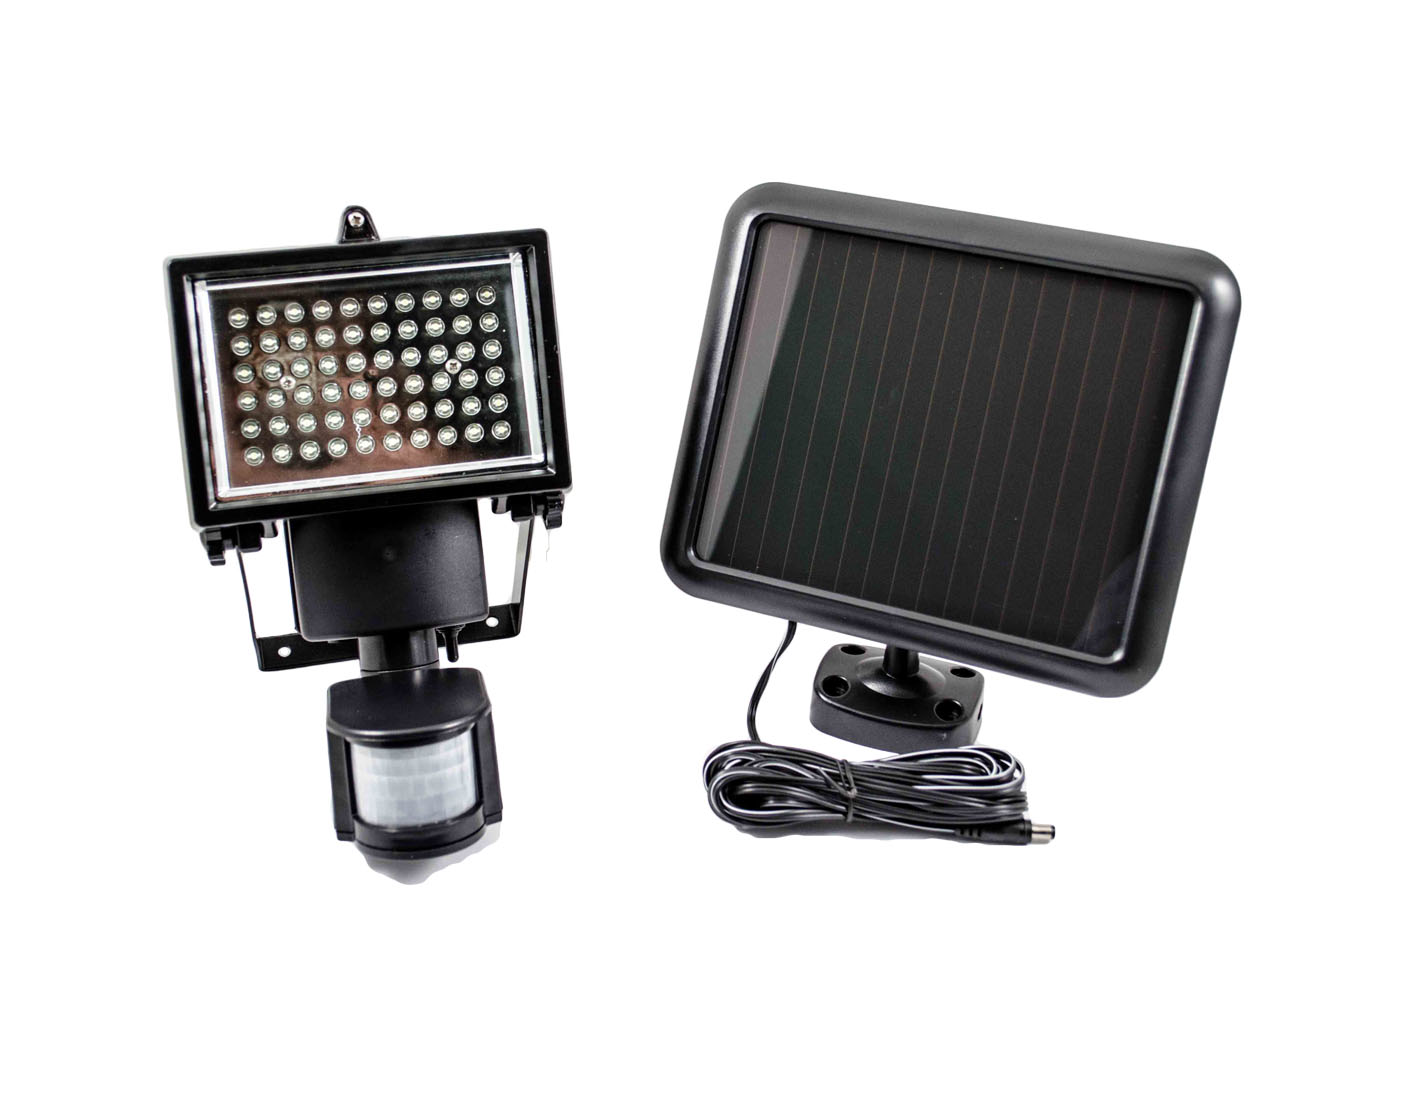 2 pack solar powered 60 led outdoor motion security flood light 2 pack solar powered 60 led outdoor motion security flood light walmart aloadofball Choice Image